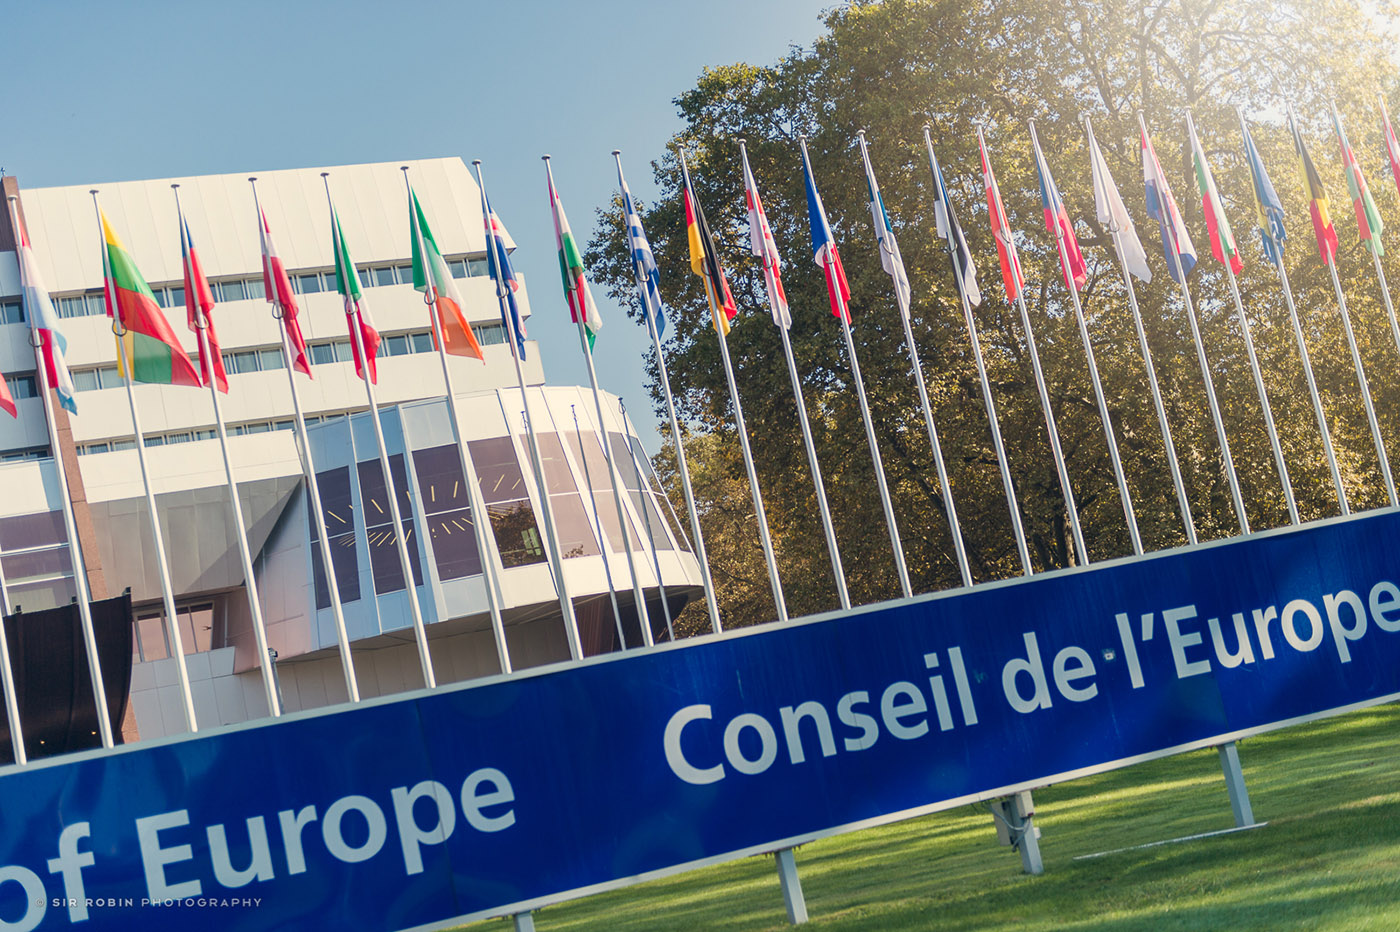 Europe's Human Rights Watchdog: The Council of Europe